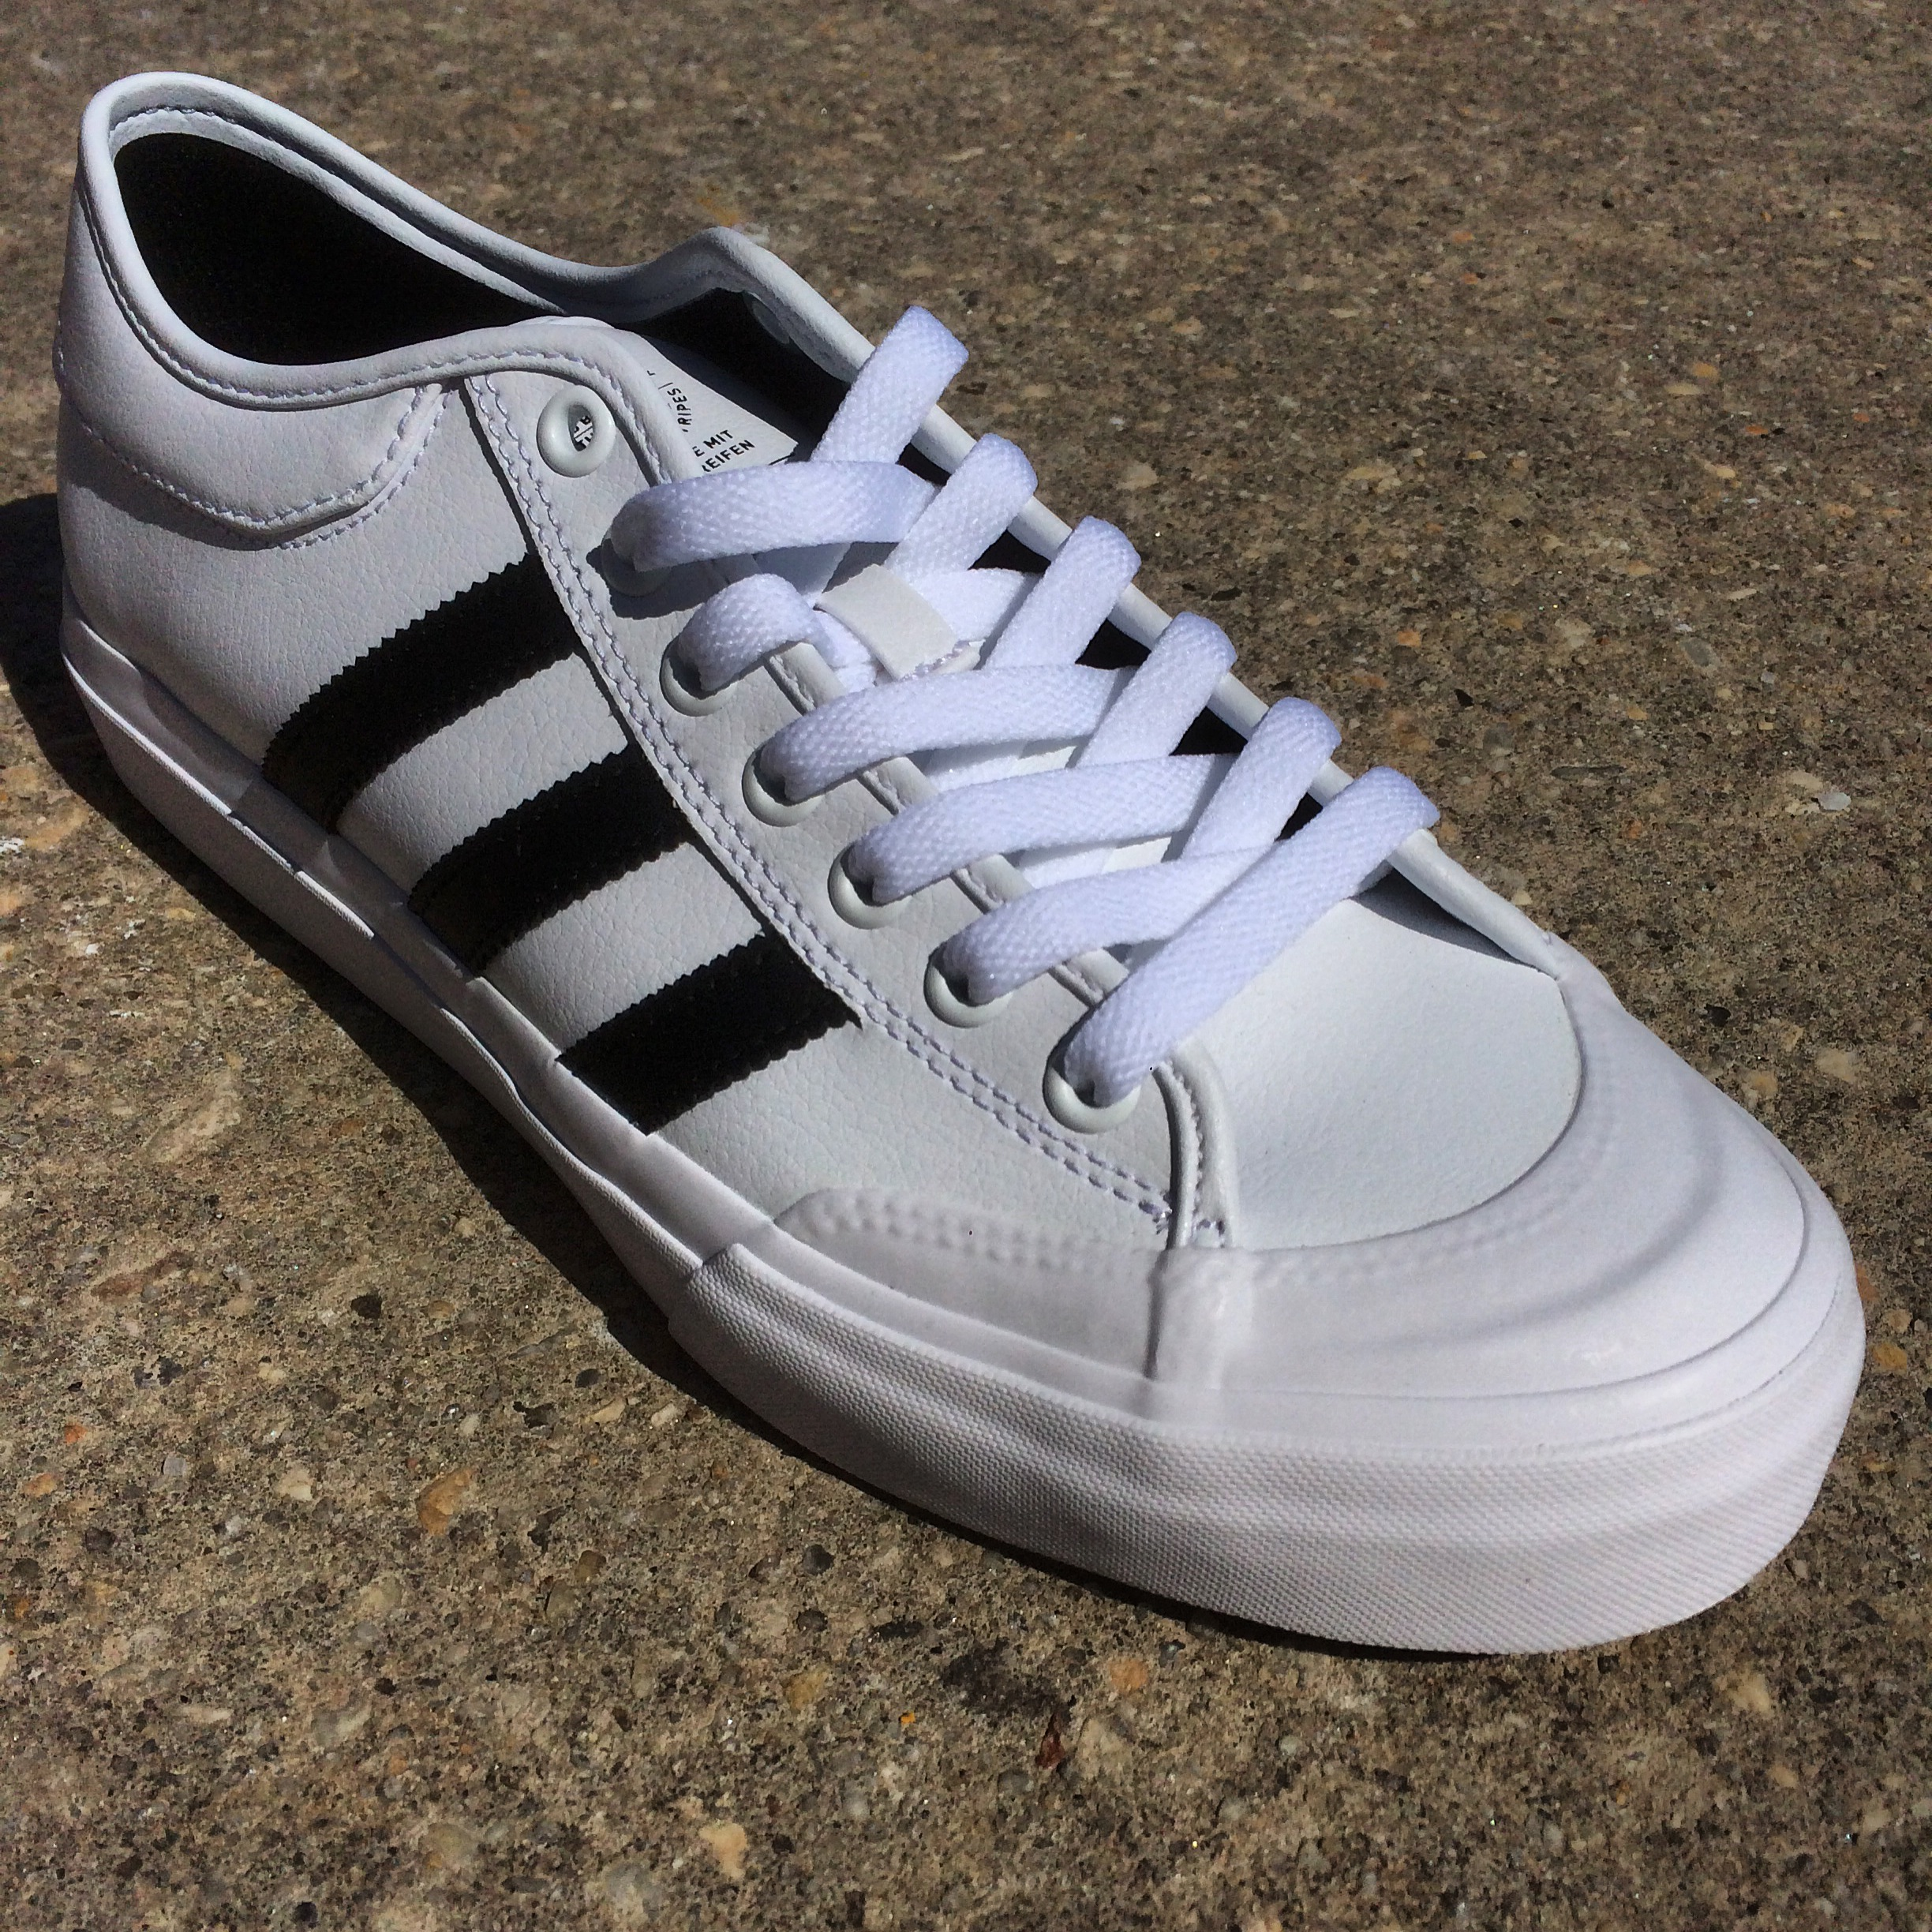 22207e1c Our Parkville Location Just Got In Adidas Match Court Low In White ...